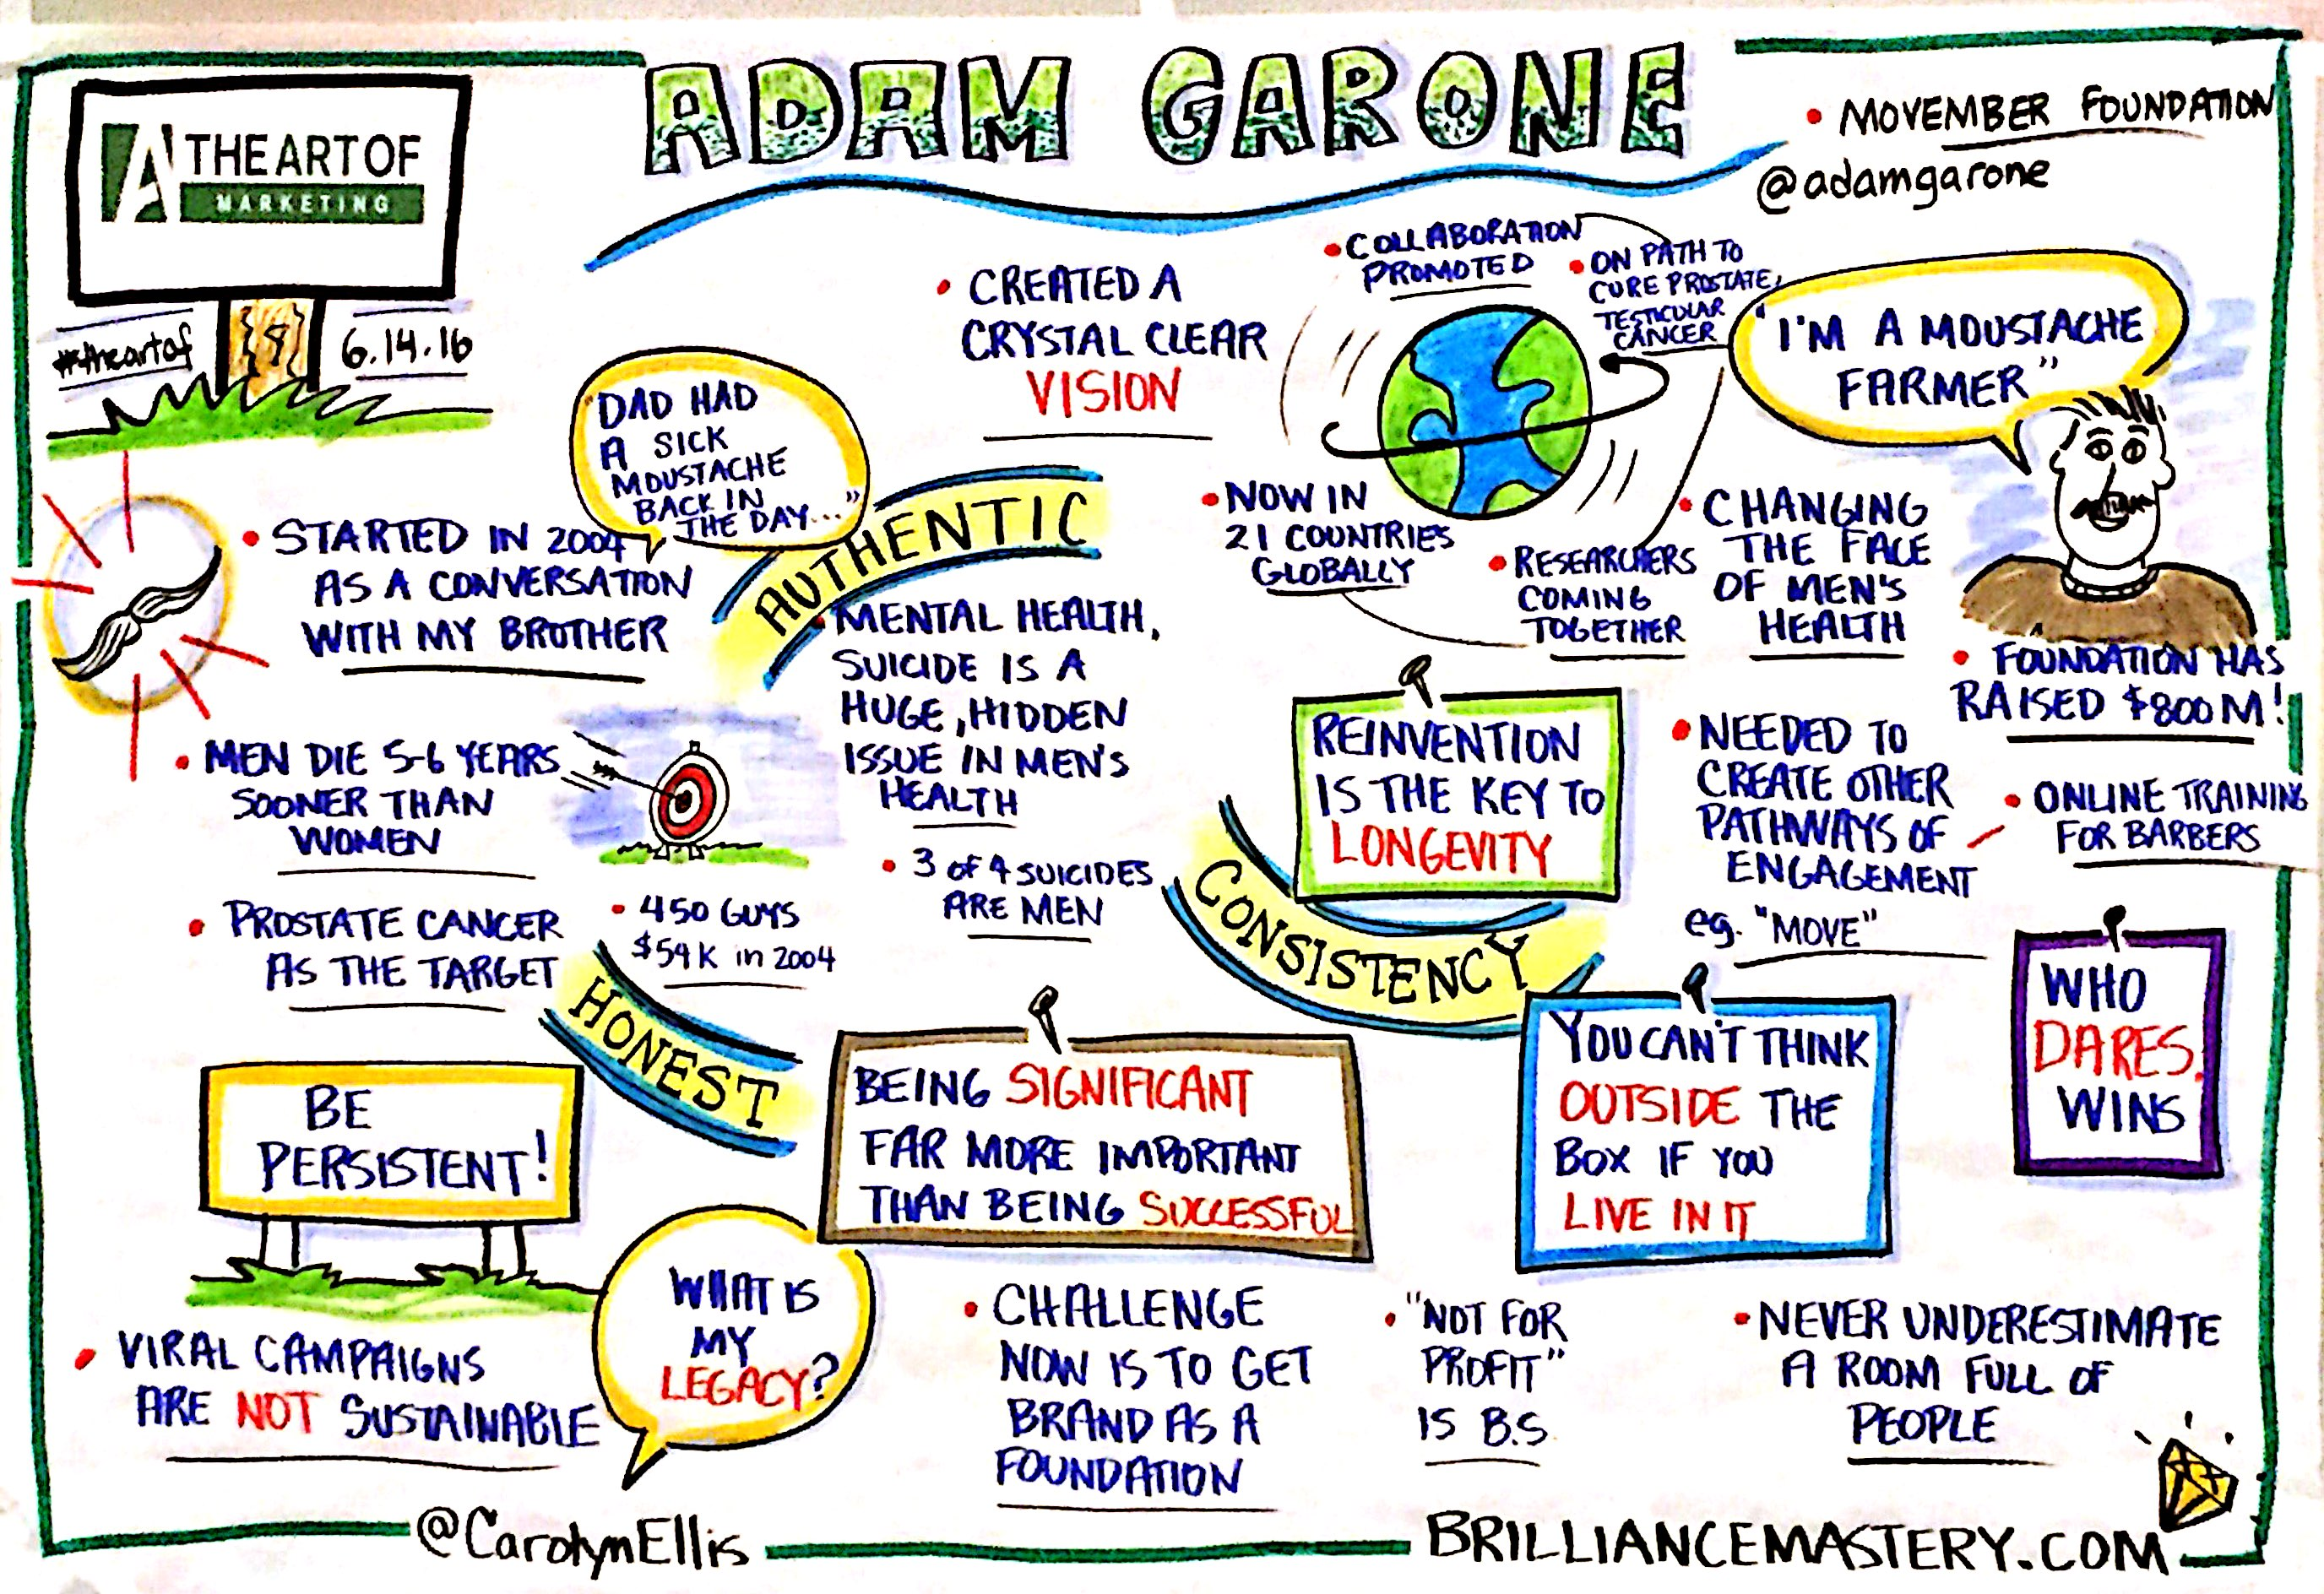 Adam-Garone-graphic-recording-from-the-art-of-marketing